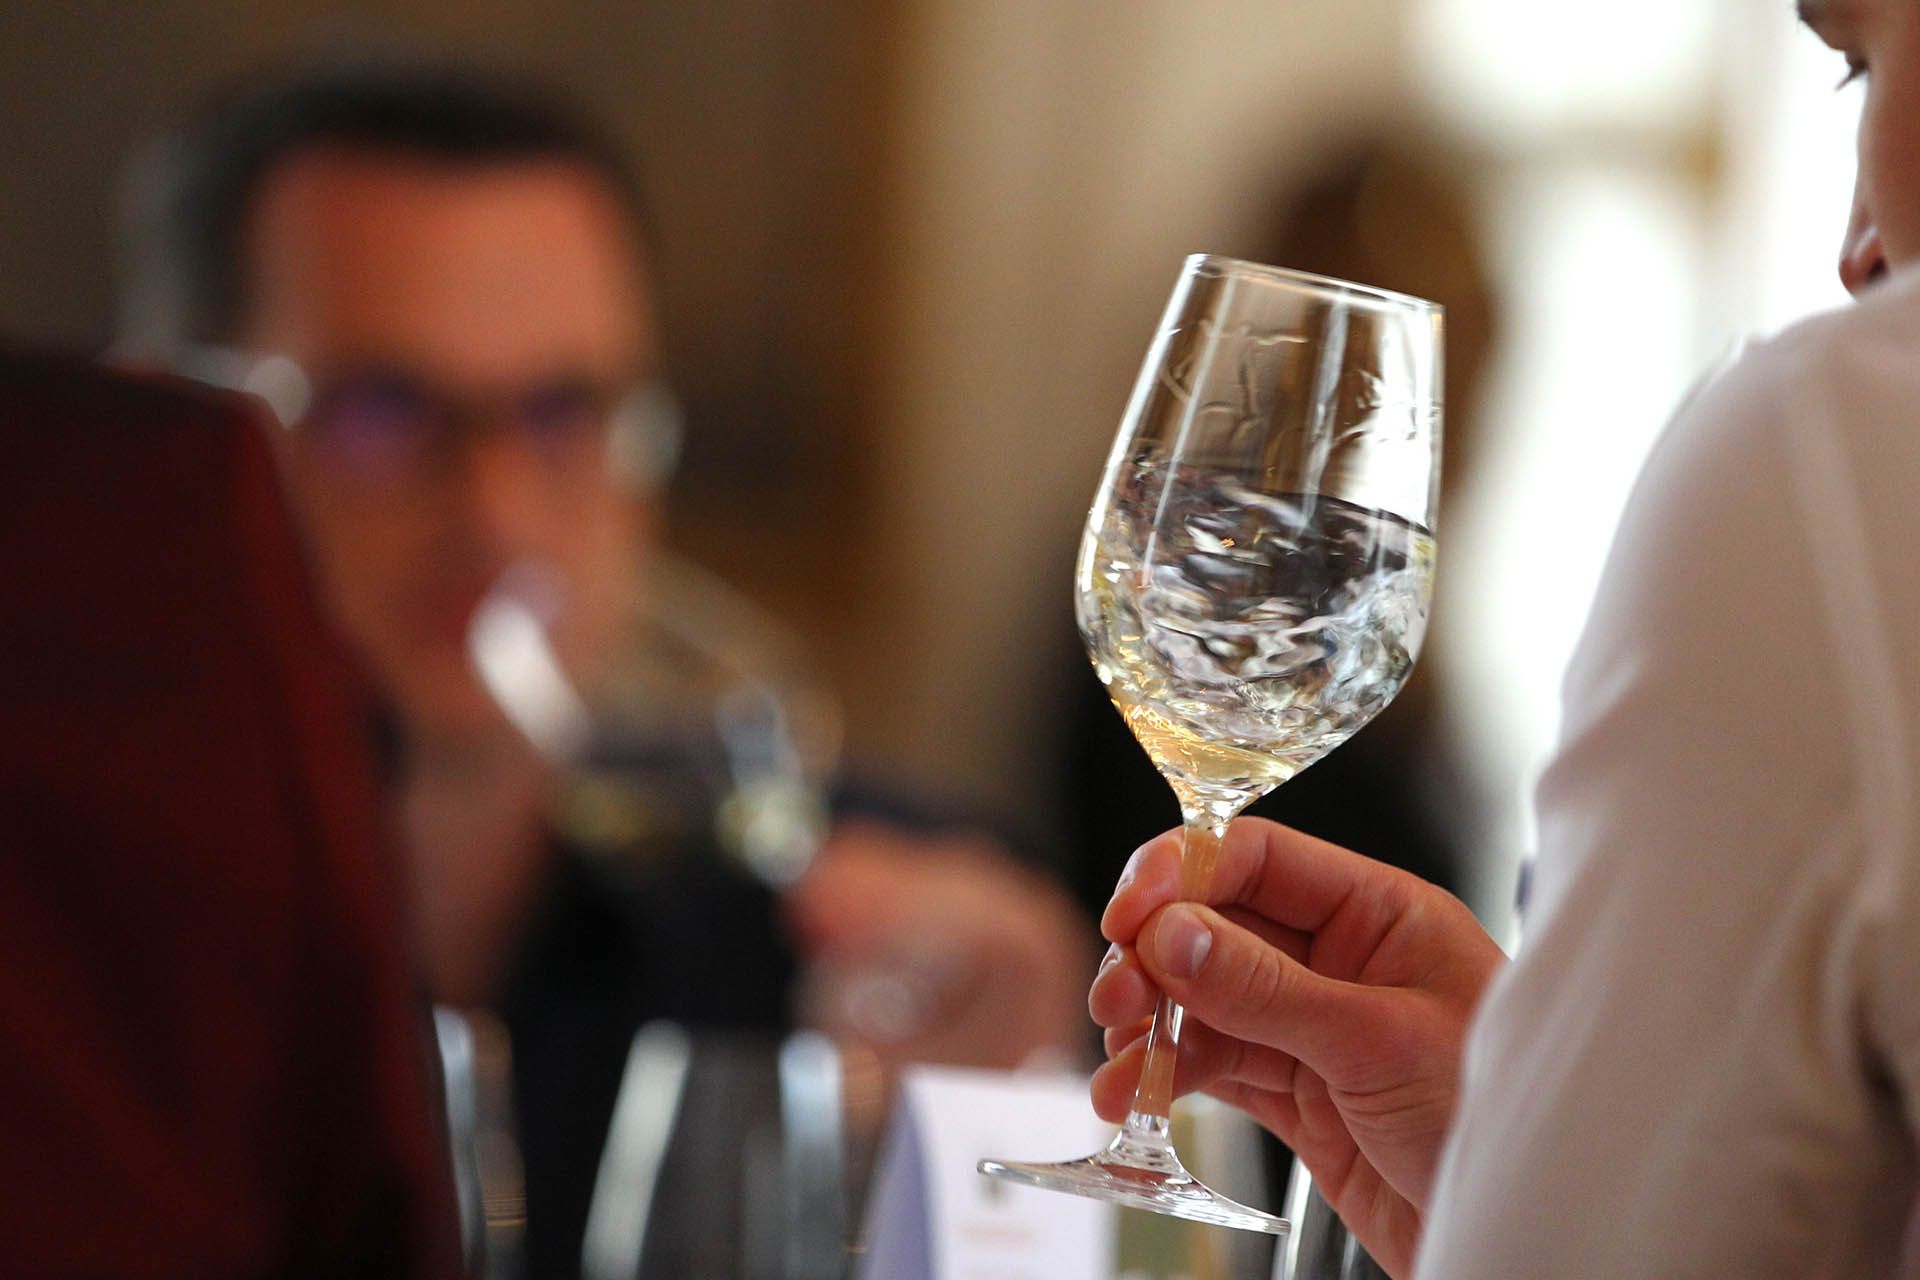 A juror swirls a glass of wine during the competition 'Best of Gold' in Wuerzburg, Germany, 11 May 2015. A jury elects the best wines from Franconia in the competition. Photo: Karl-Josef Hildenbrand /dpa | usage worldwide (Photo by Karl-Josef Hildenbrand/picture alliance via Getty Images)